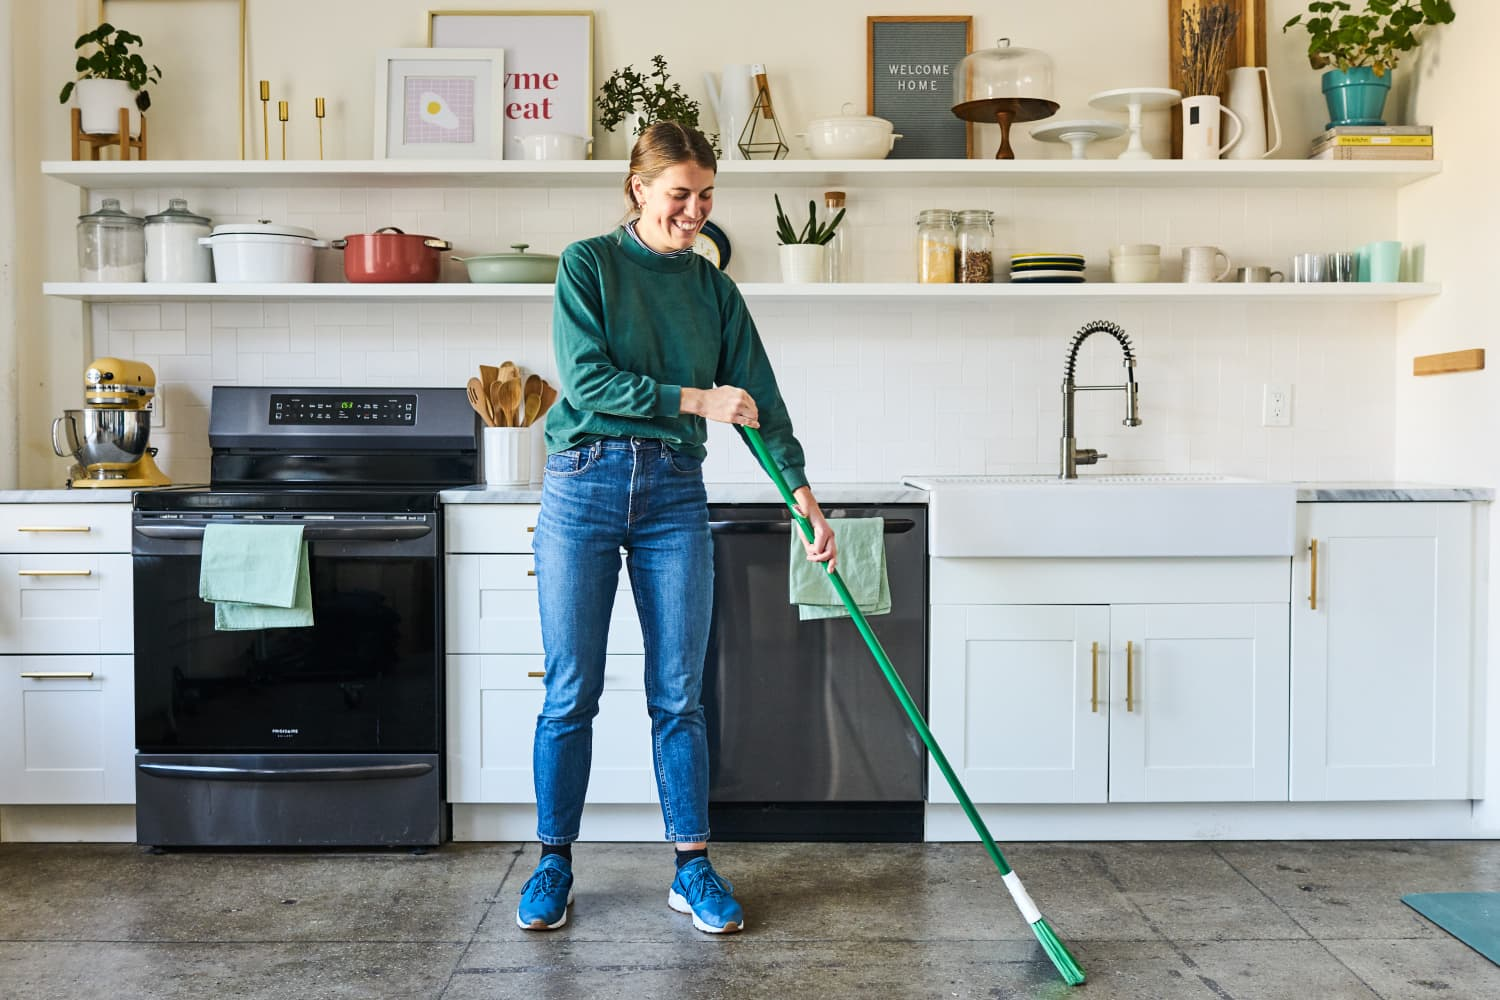 10 Brilliant Cleaning Tips We Learned from the Go Clean Co Instagram Account